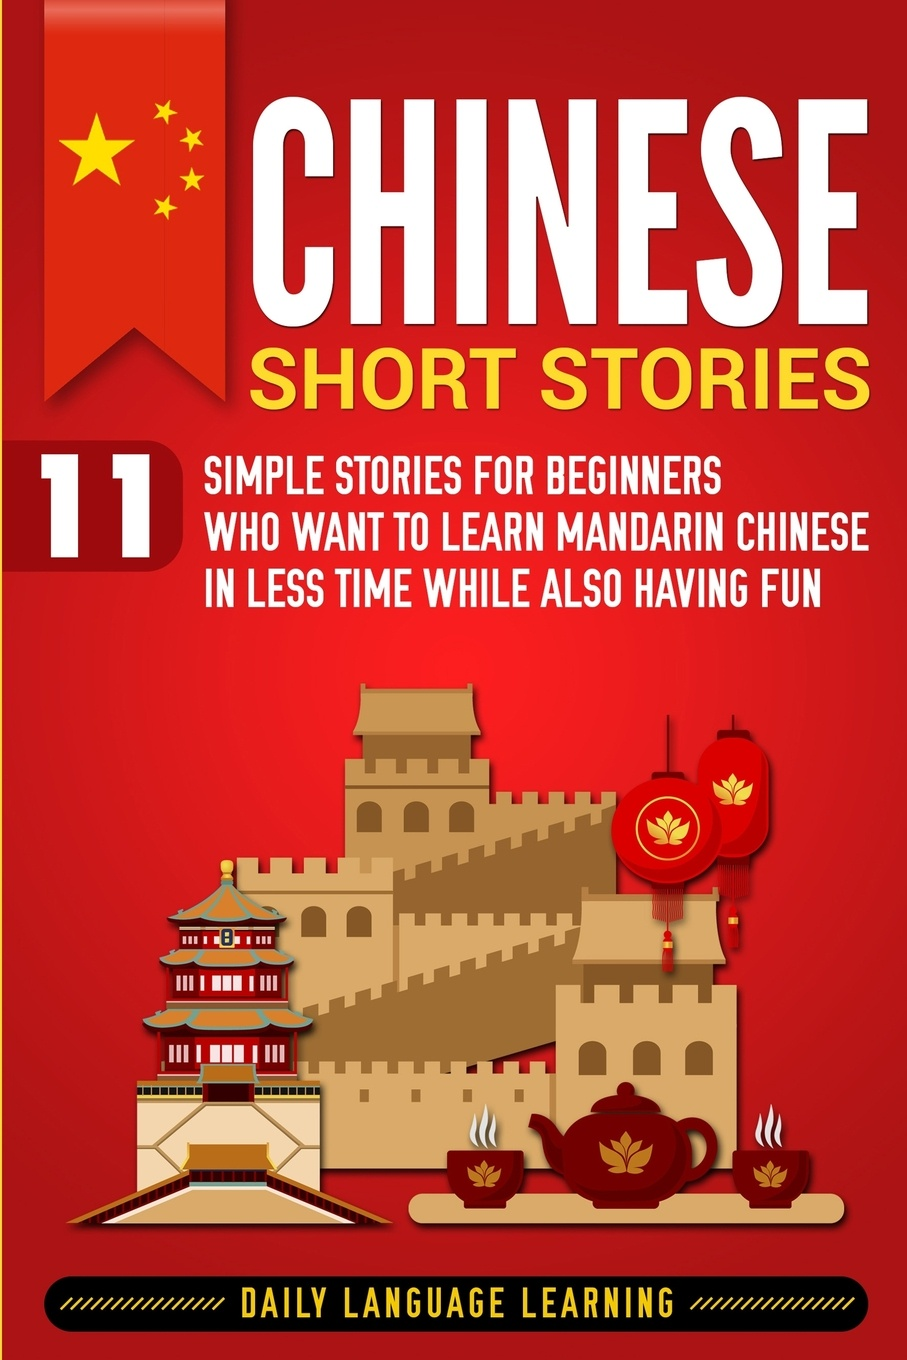 Daily Language Learning Chinese Short Stories. 11 Simple Stories for Beginners Who Want to Learn Mandarin Chinese in Less Time While Also Having Fun